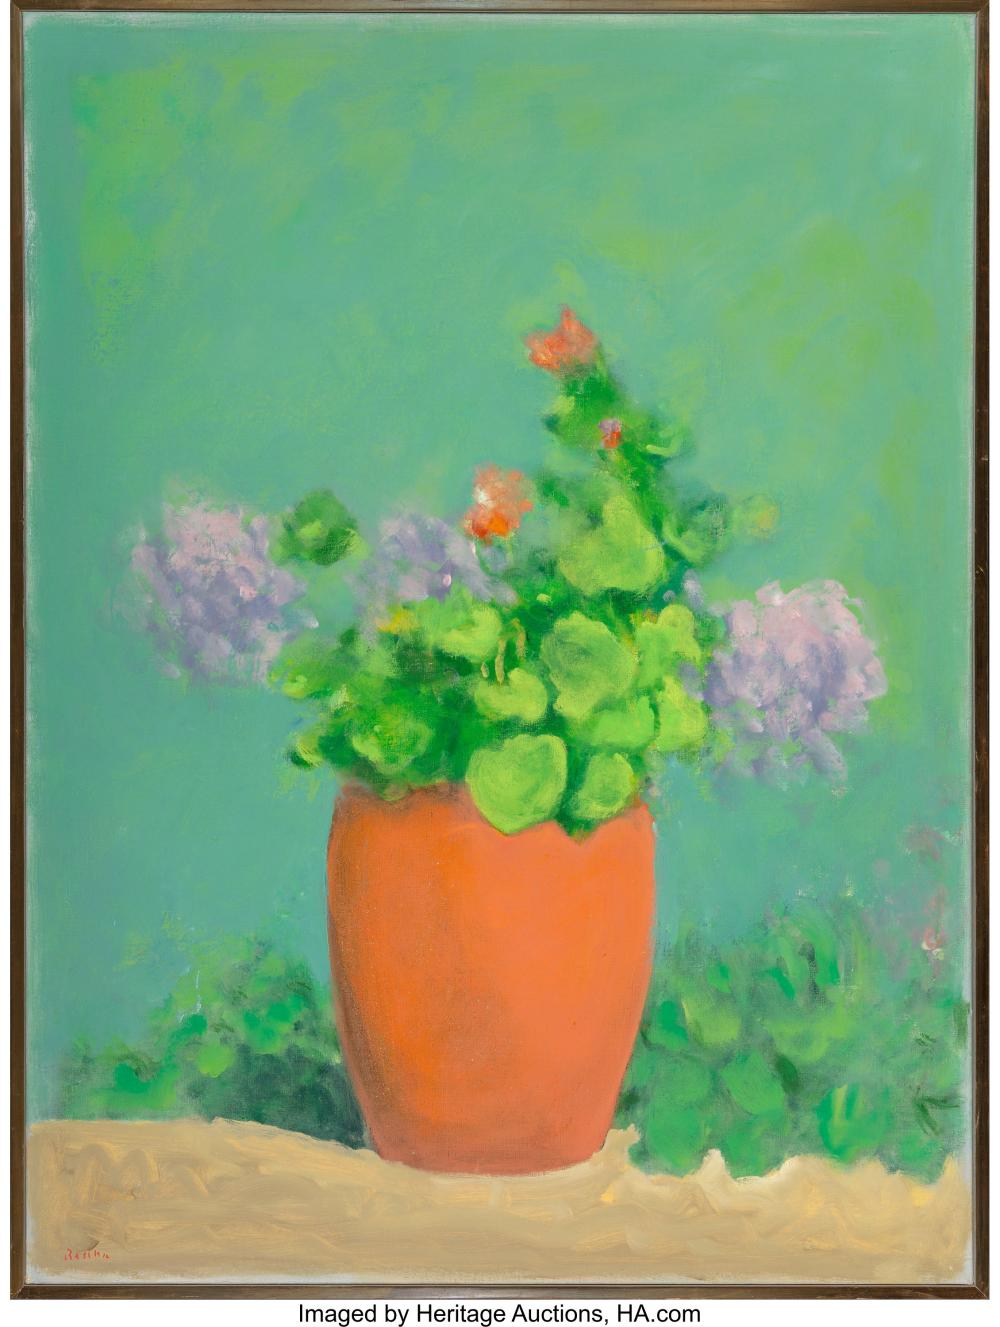 Lot 21010: Paul Resika (American, b. 1928) Geraniums Oil on canvas 48-3/4 x 36-1/2 inches (